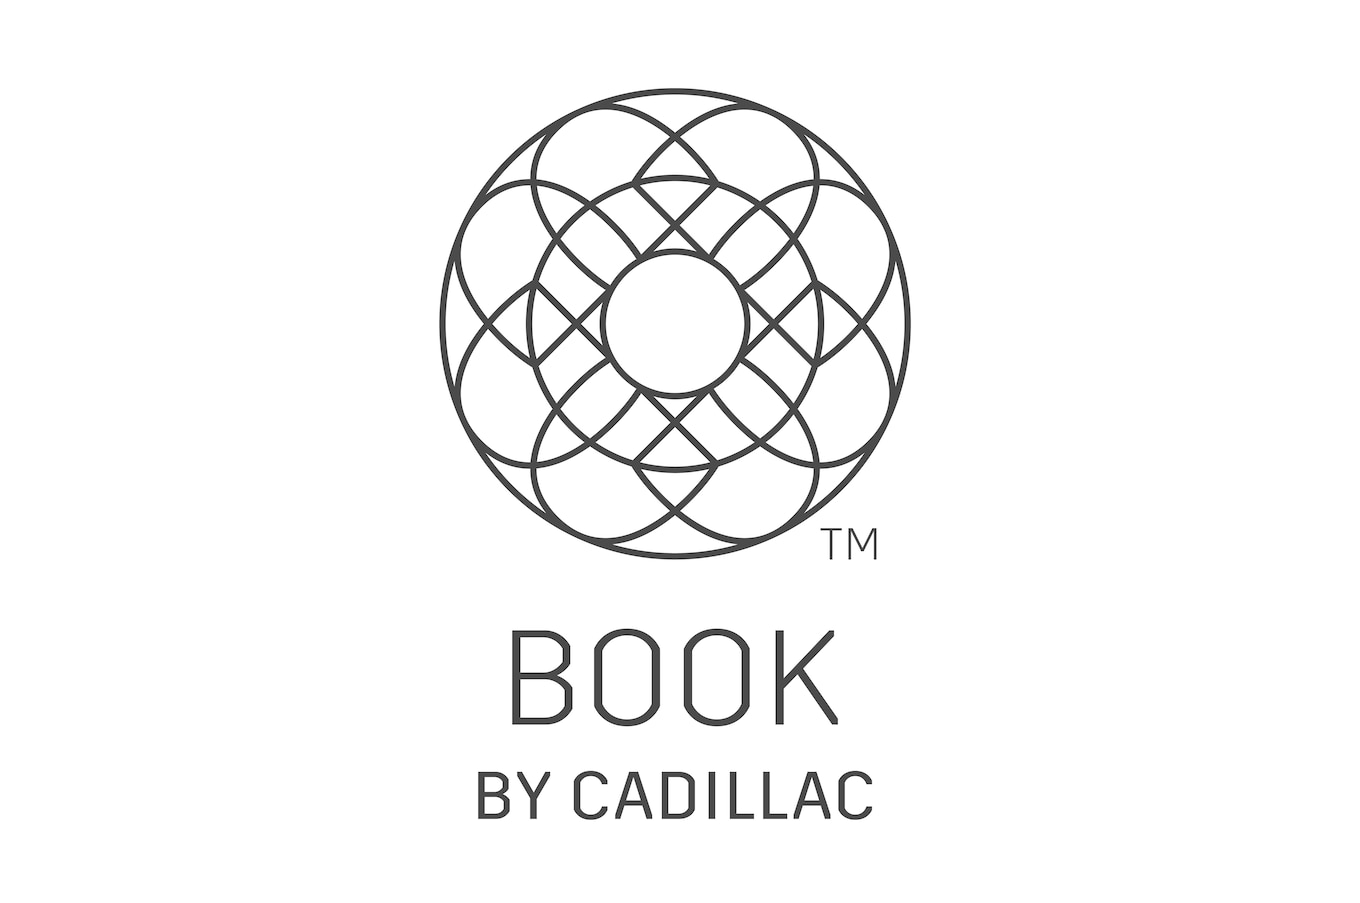 Book by Cadillac is a New Subscription-Based Vehicle